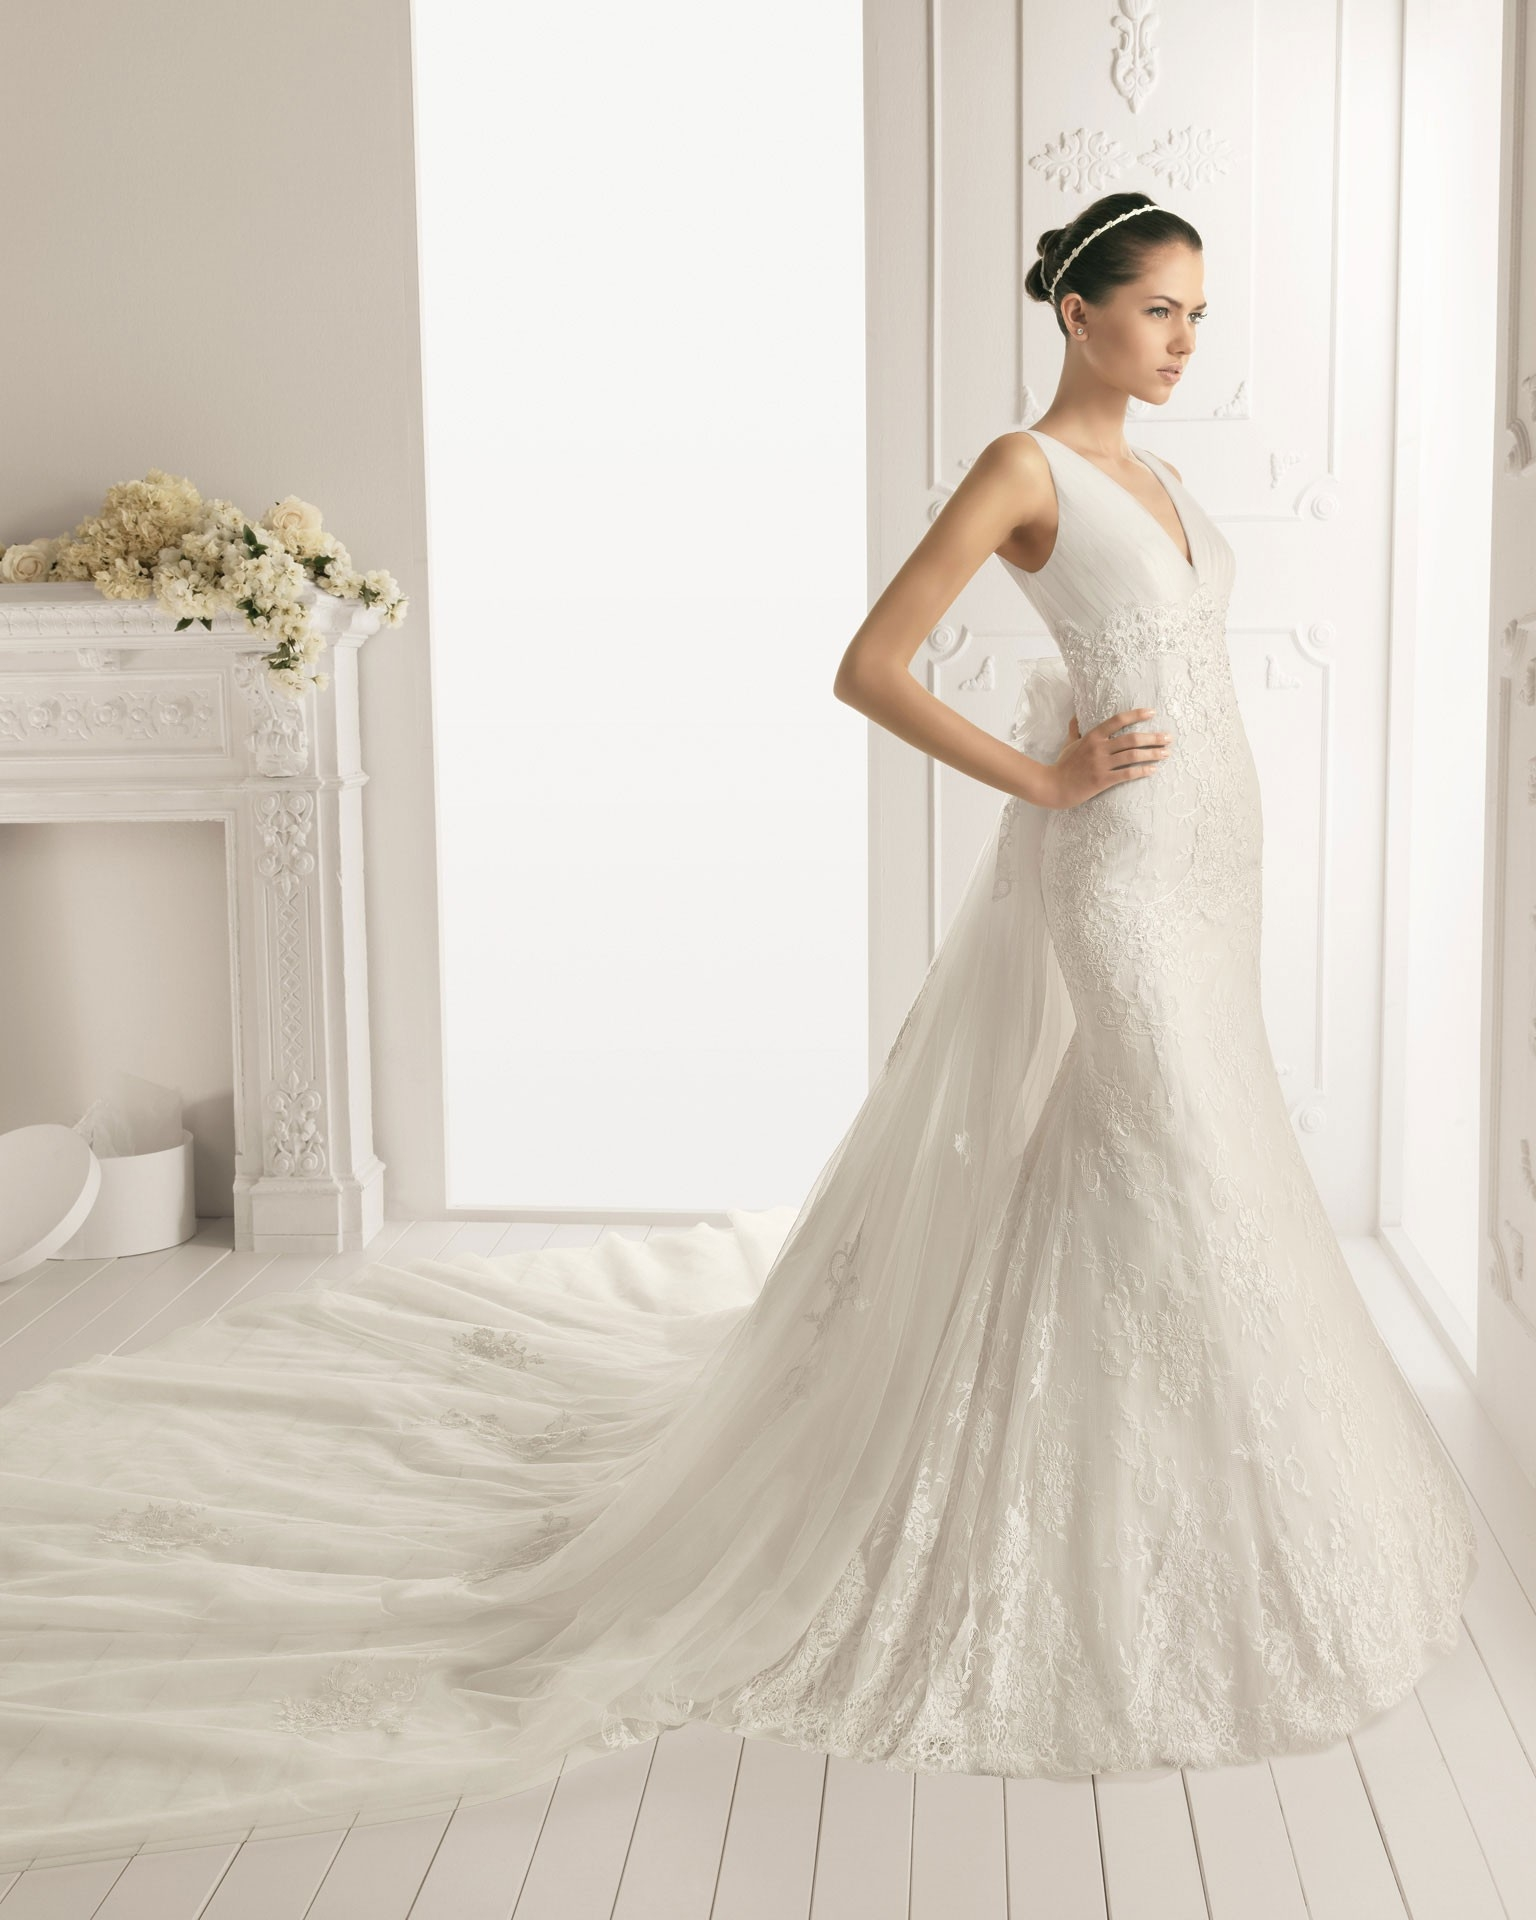 Bridal Dress With Detachable Train: A Collection Of Gorgeous Wedding Dresses With Detachable